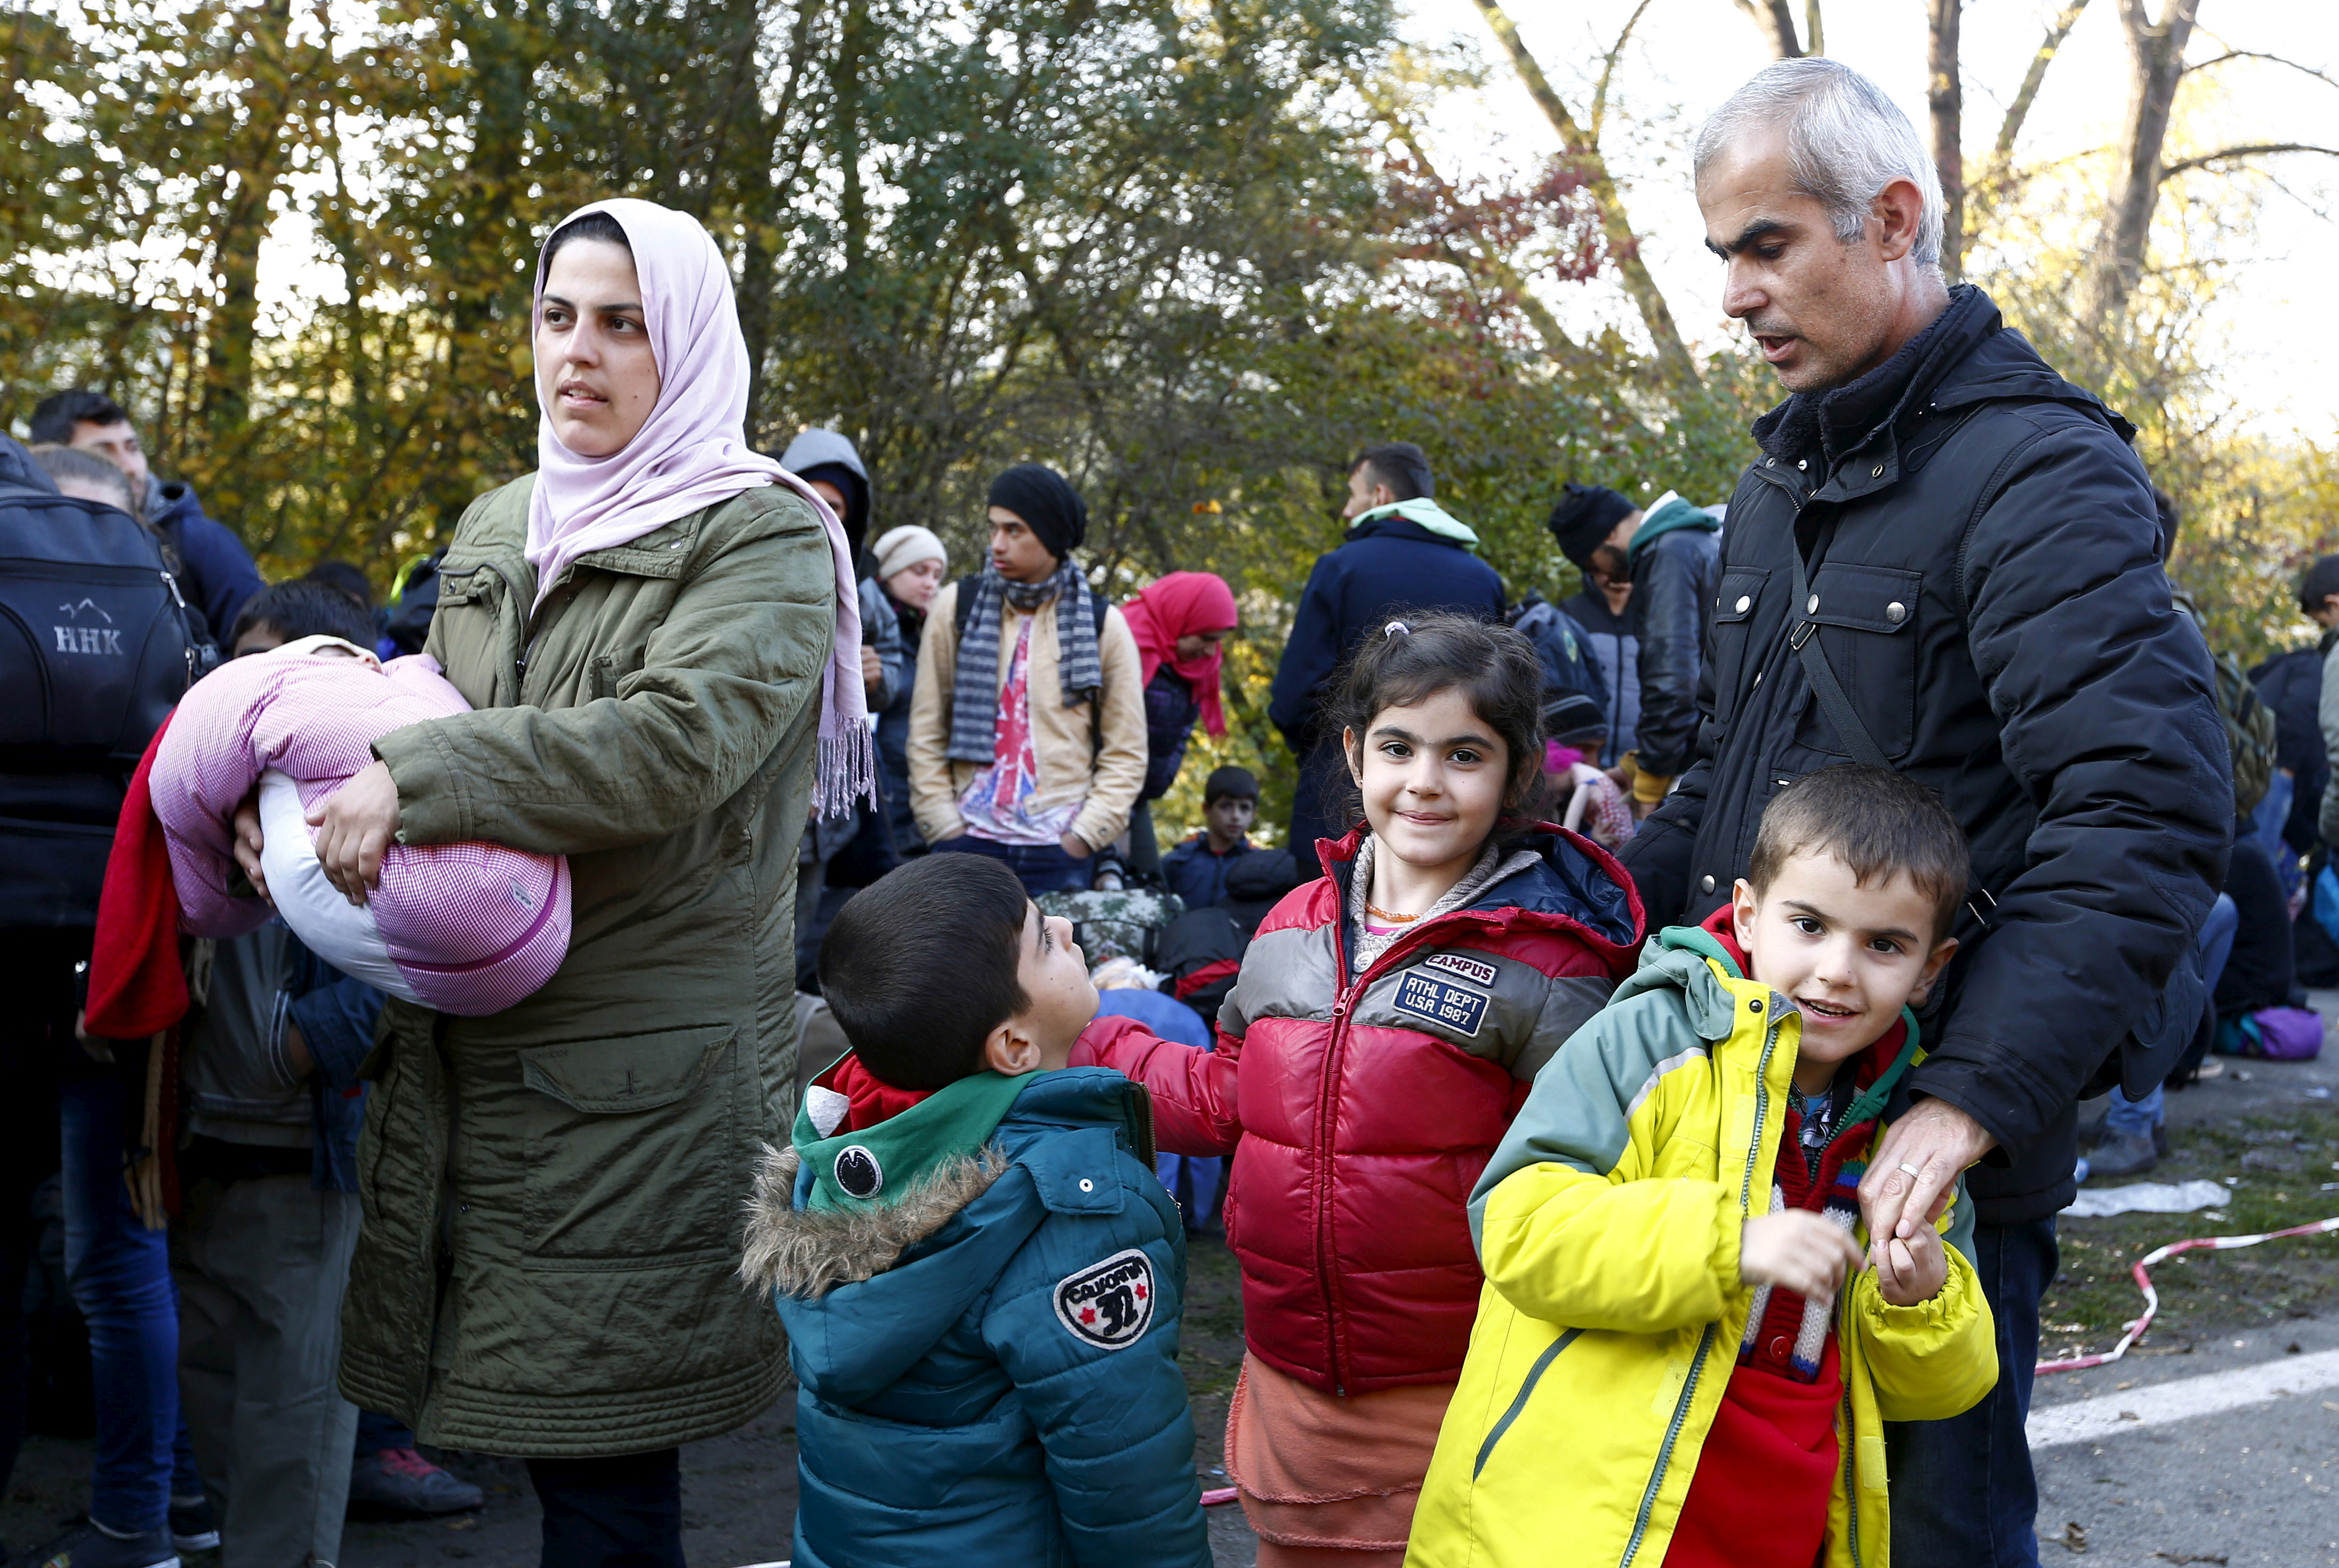 Syrian migrant Zake Khalil (R), his wife Nagwa (L) and their four children Joan (3rd L), Torin (3rd R), Ellen (2nd R) and newborn Hevin arrive at the Austrian-German border in Achleiten near Passau, Germany, October 27, 2015. REUTERS/Michaela Rehle